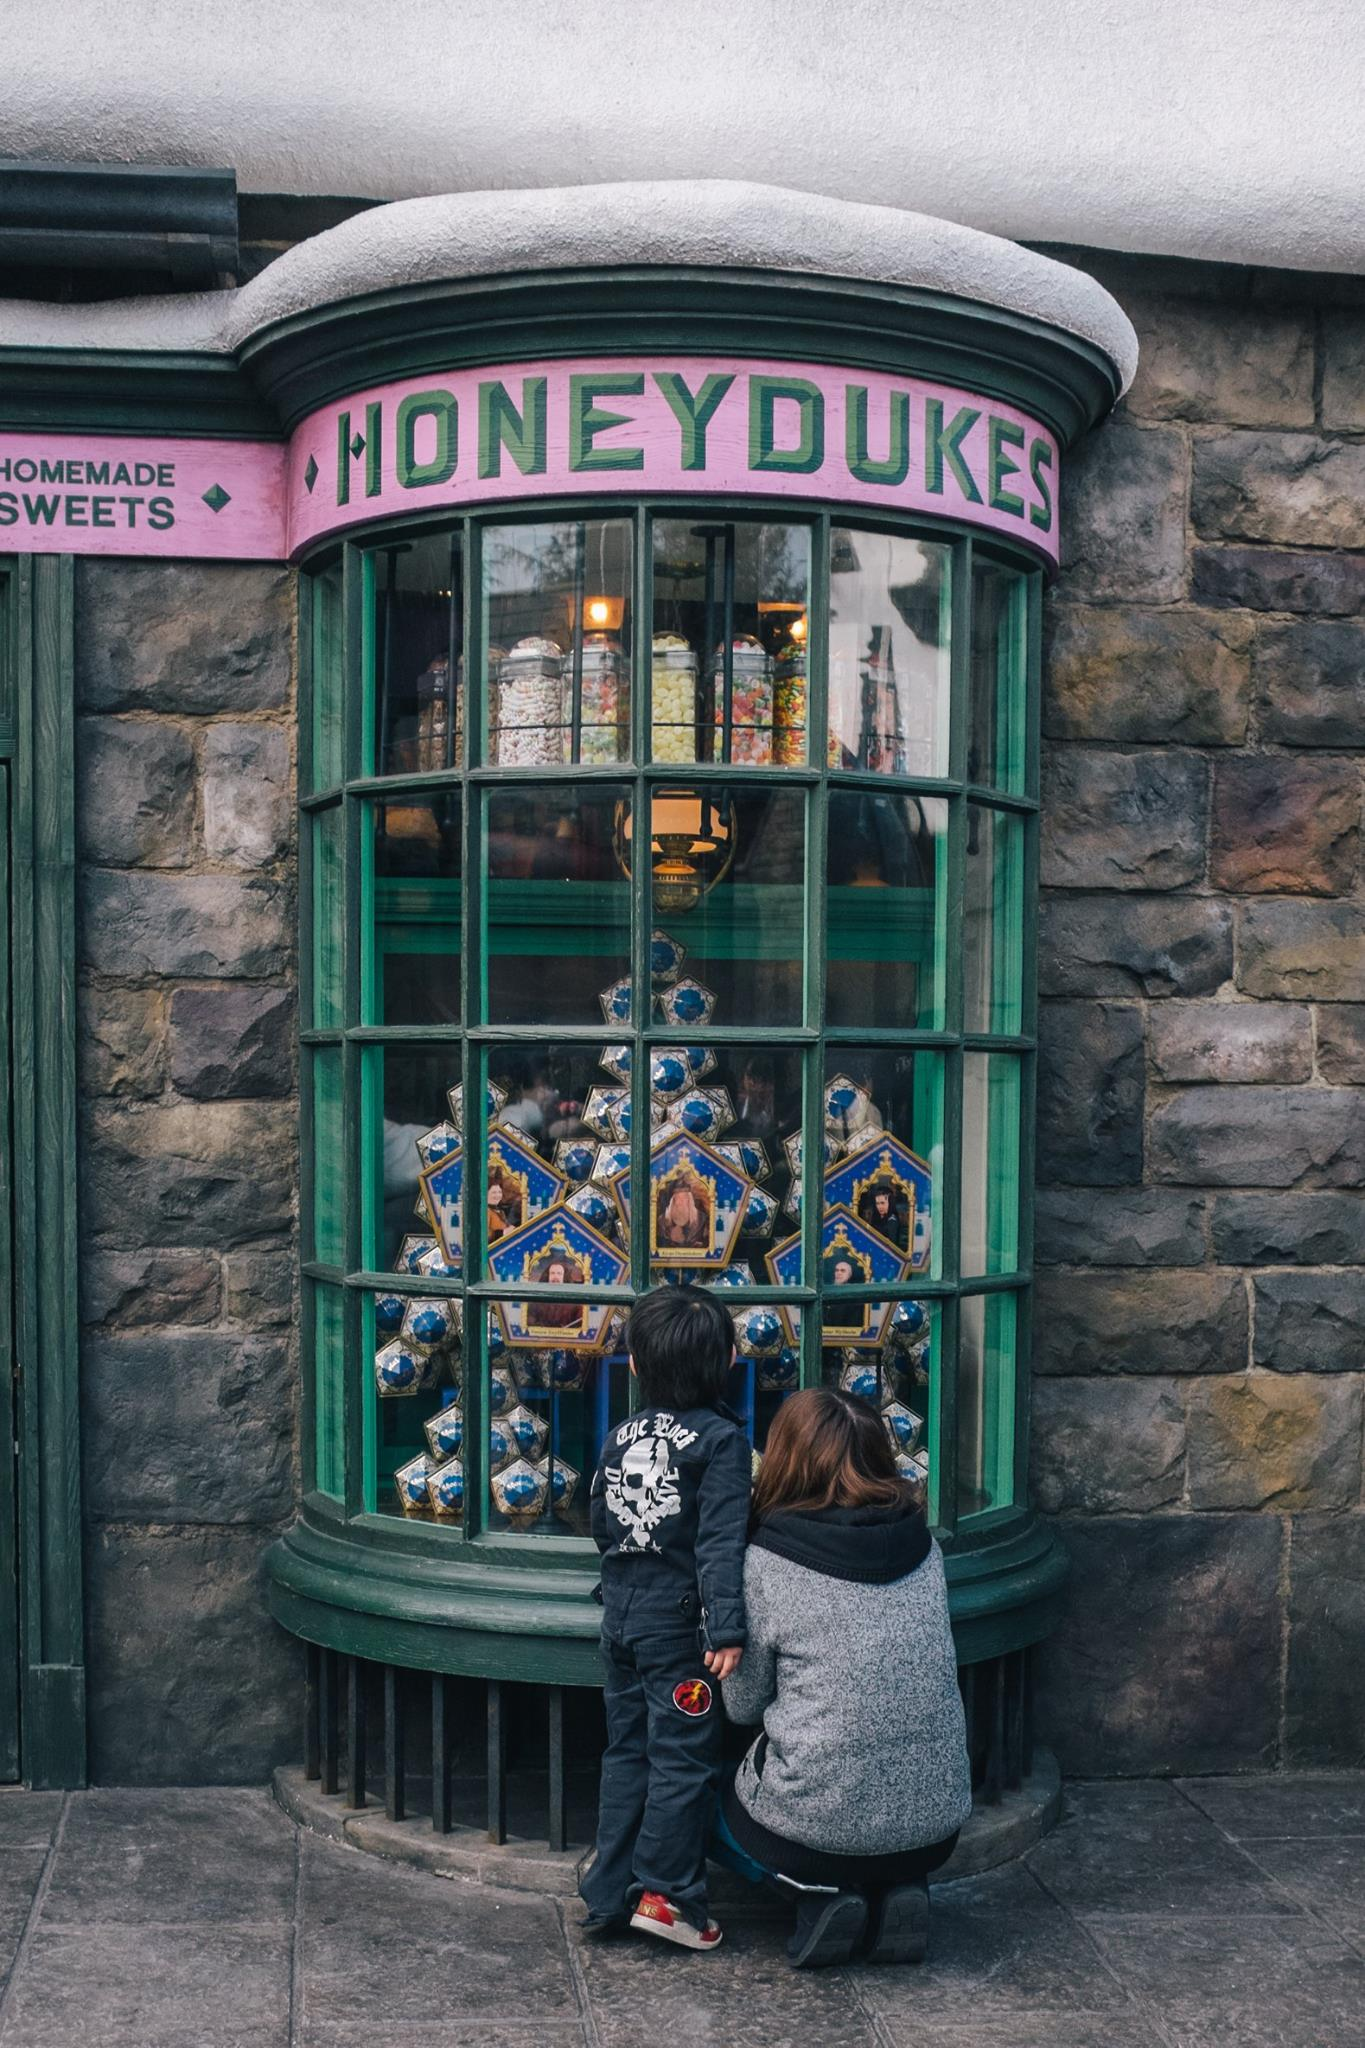 wizarding world of harry potter_maren-hald-bjorgum-16